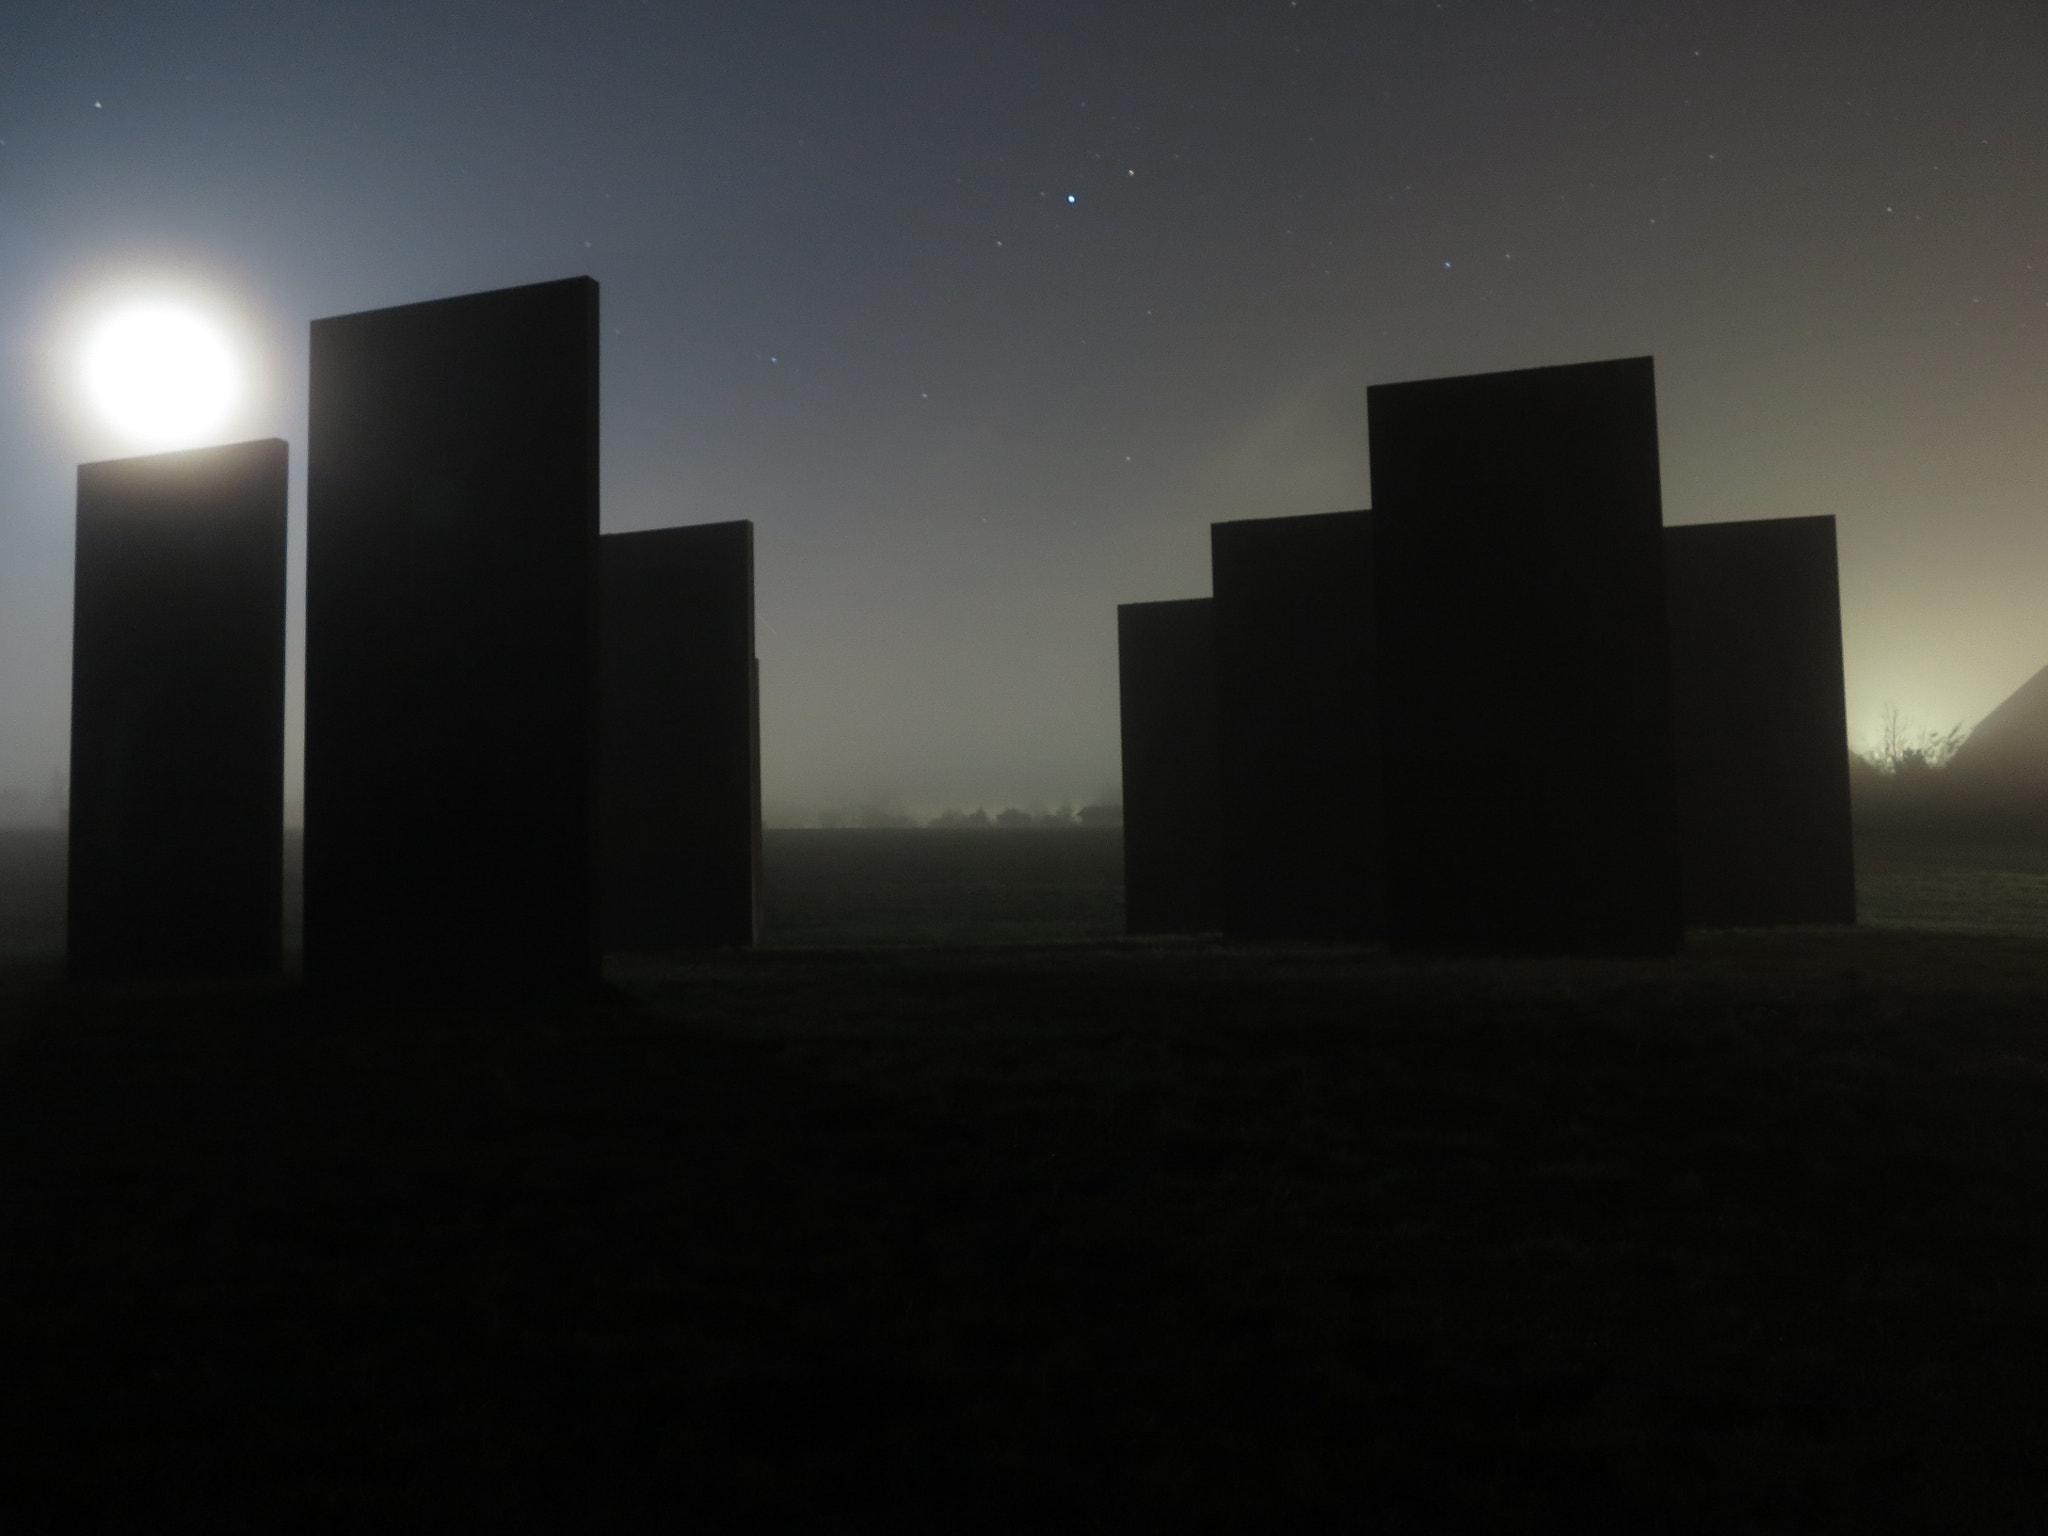 Photograph Monolith 104 - Moonlight by Werner Assmann on 500px